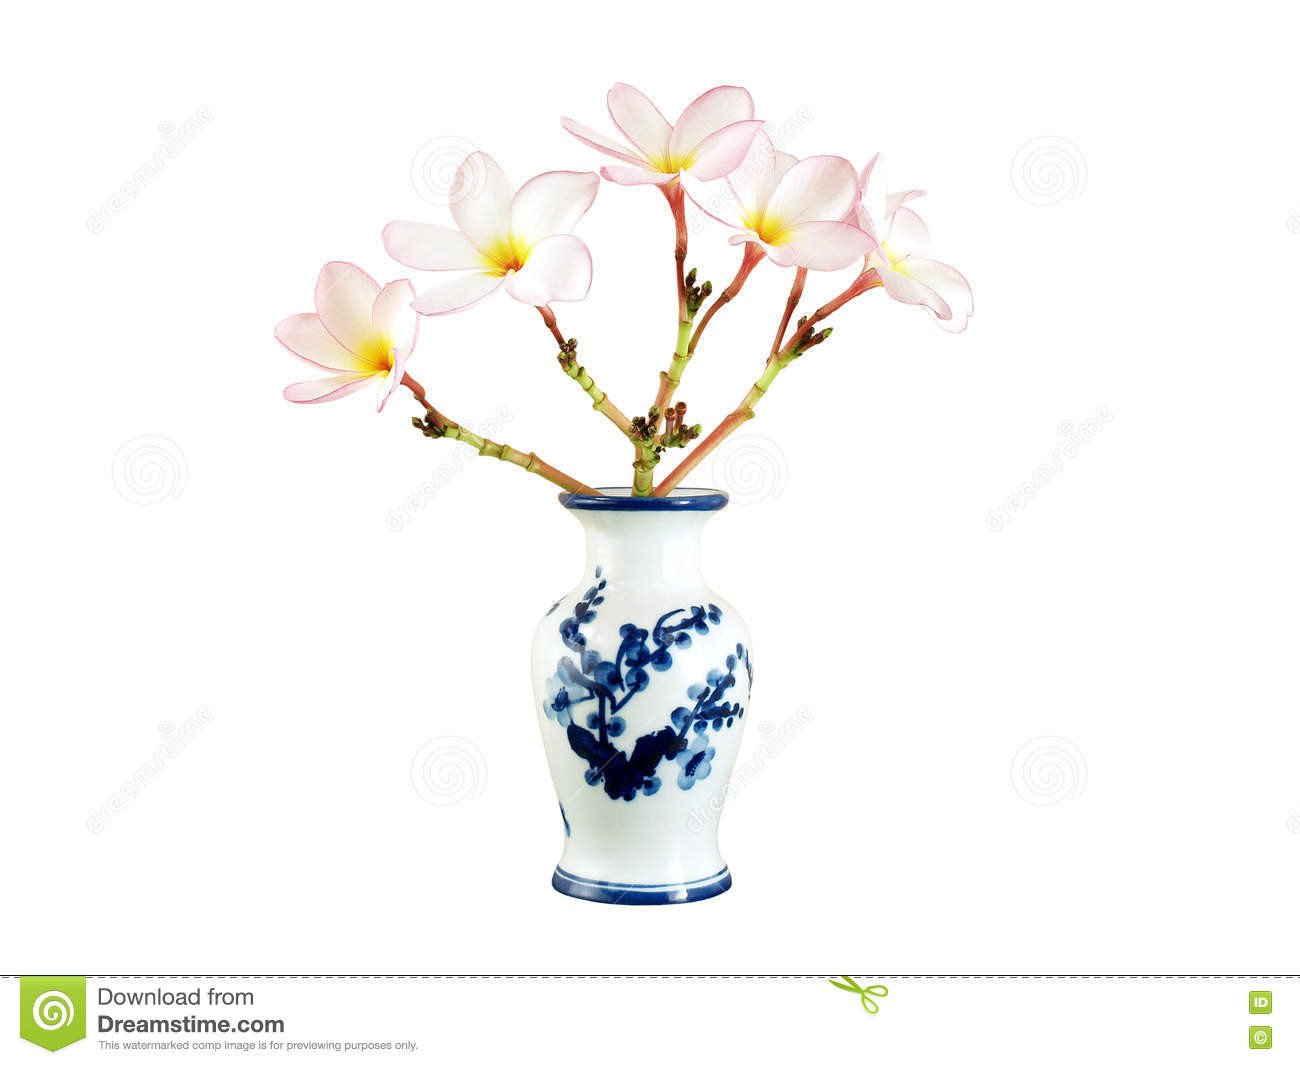 red and white glass vase of beautiful bouquet light pink plumeria or frangipani in white chinese in beautiful bouquet light pink plumeria or frangipani in white chinese vase with blue flowers pattern isolated